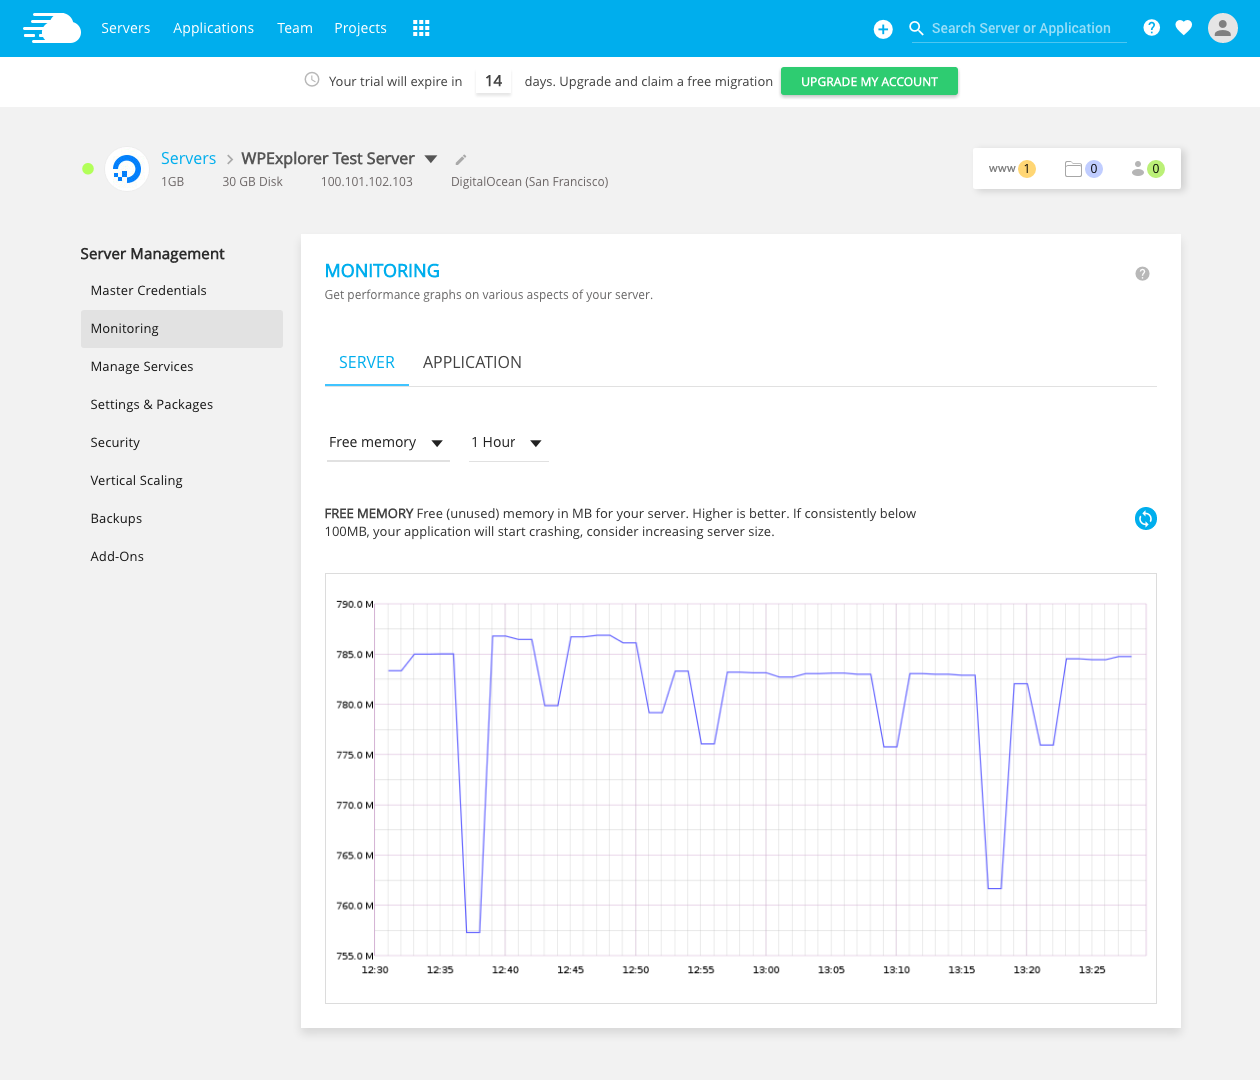 Cloudways Server Monitoring Free Memory